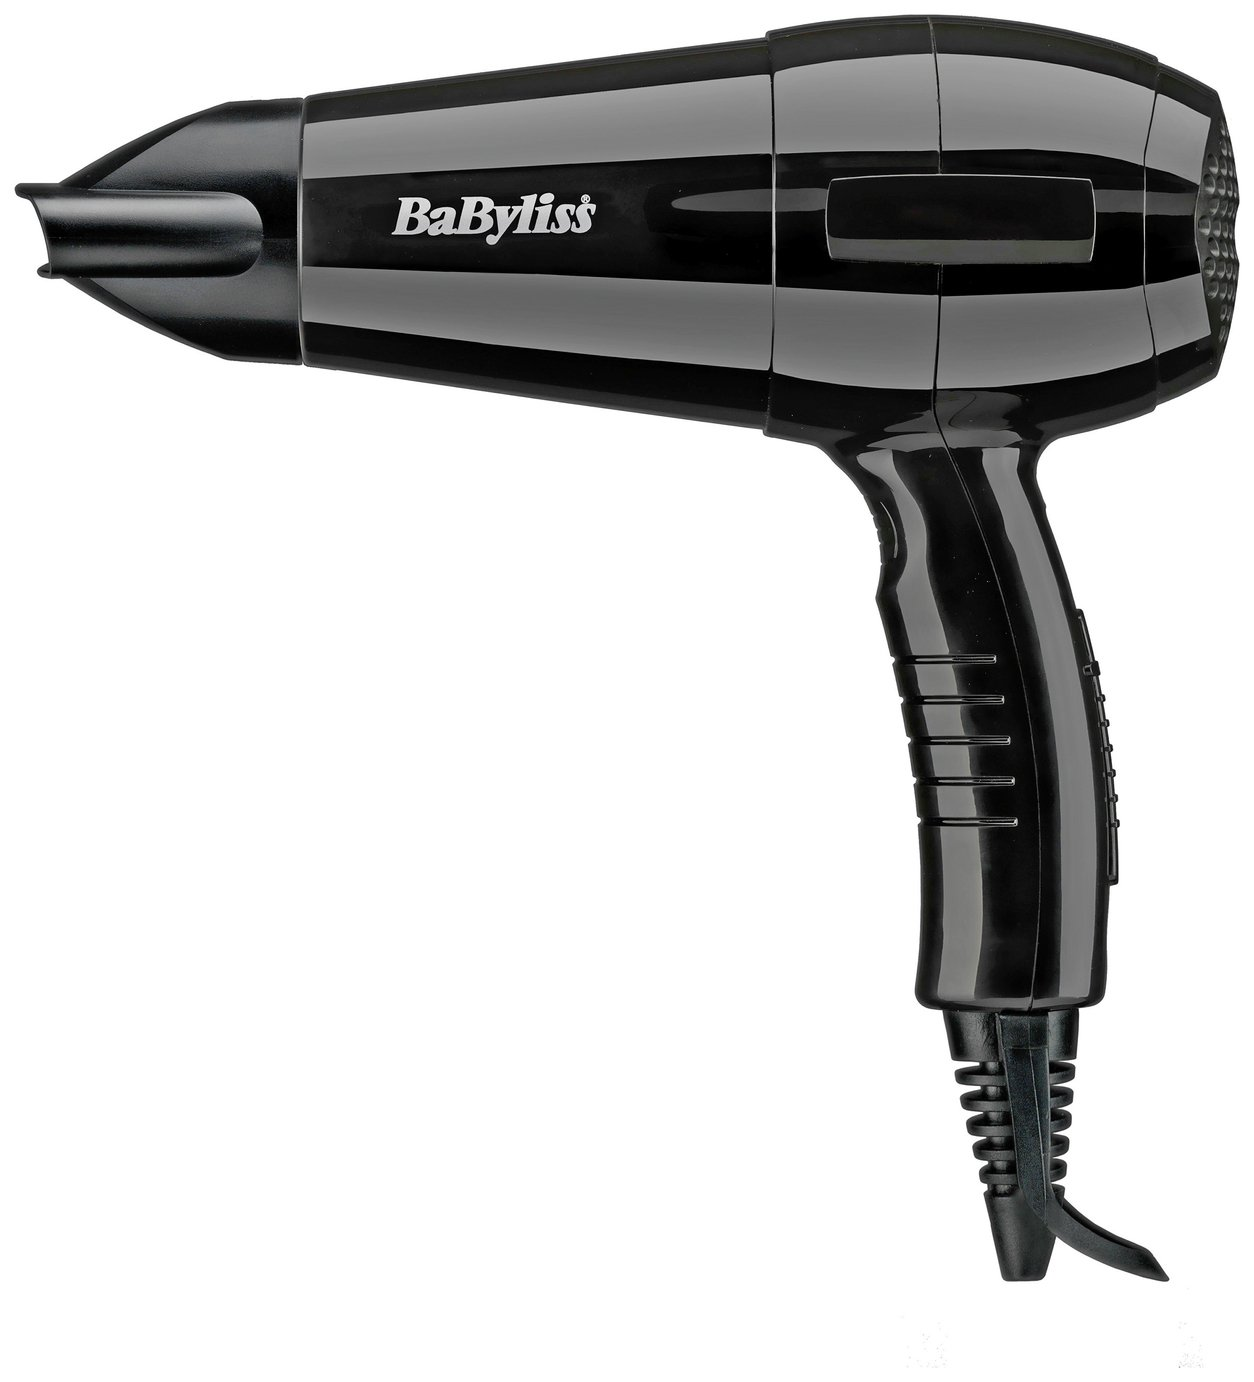 'Babyliss - 2000w Power Dry - Hair Dryer